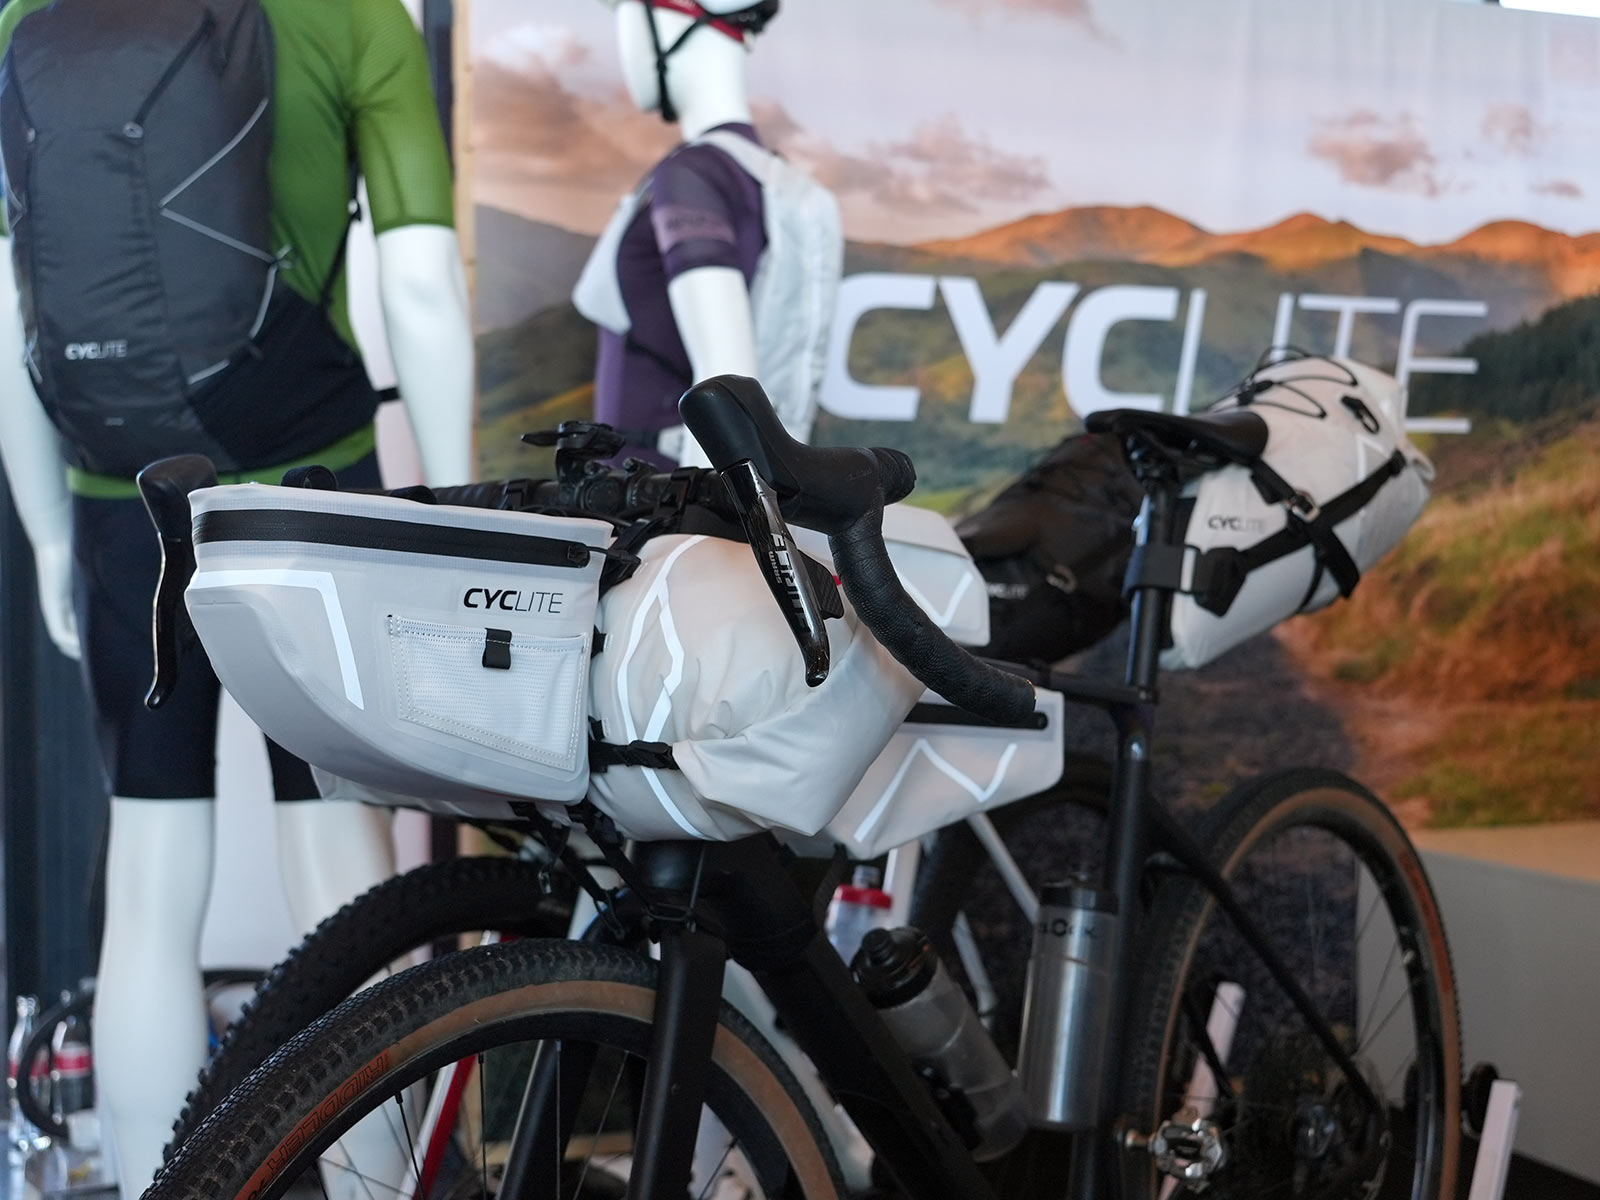 cyclite ultralight frame bags for bikepacking shown on a gravel touring bicycle